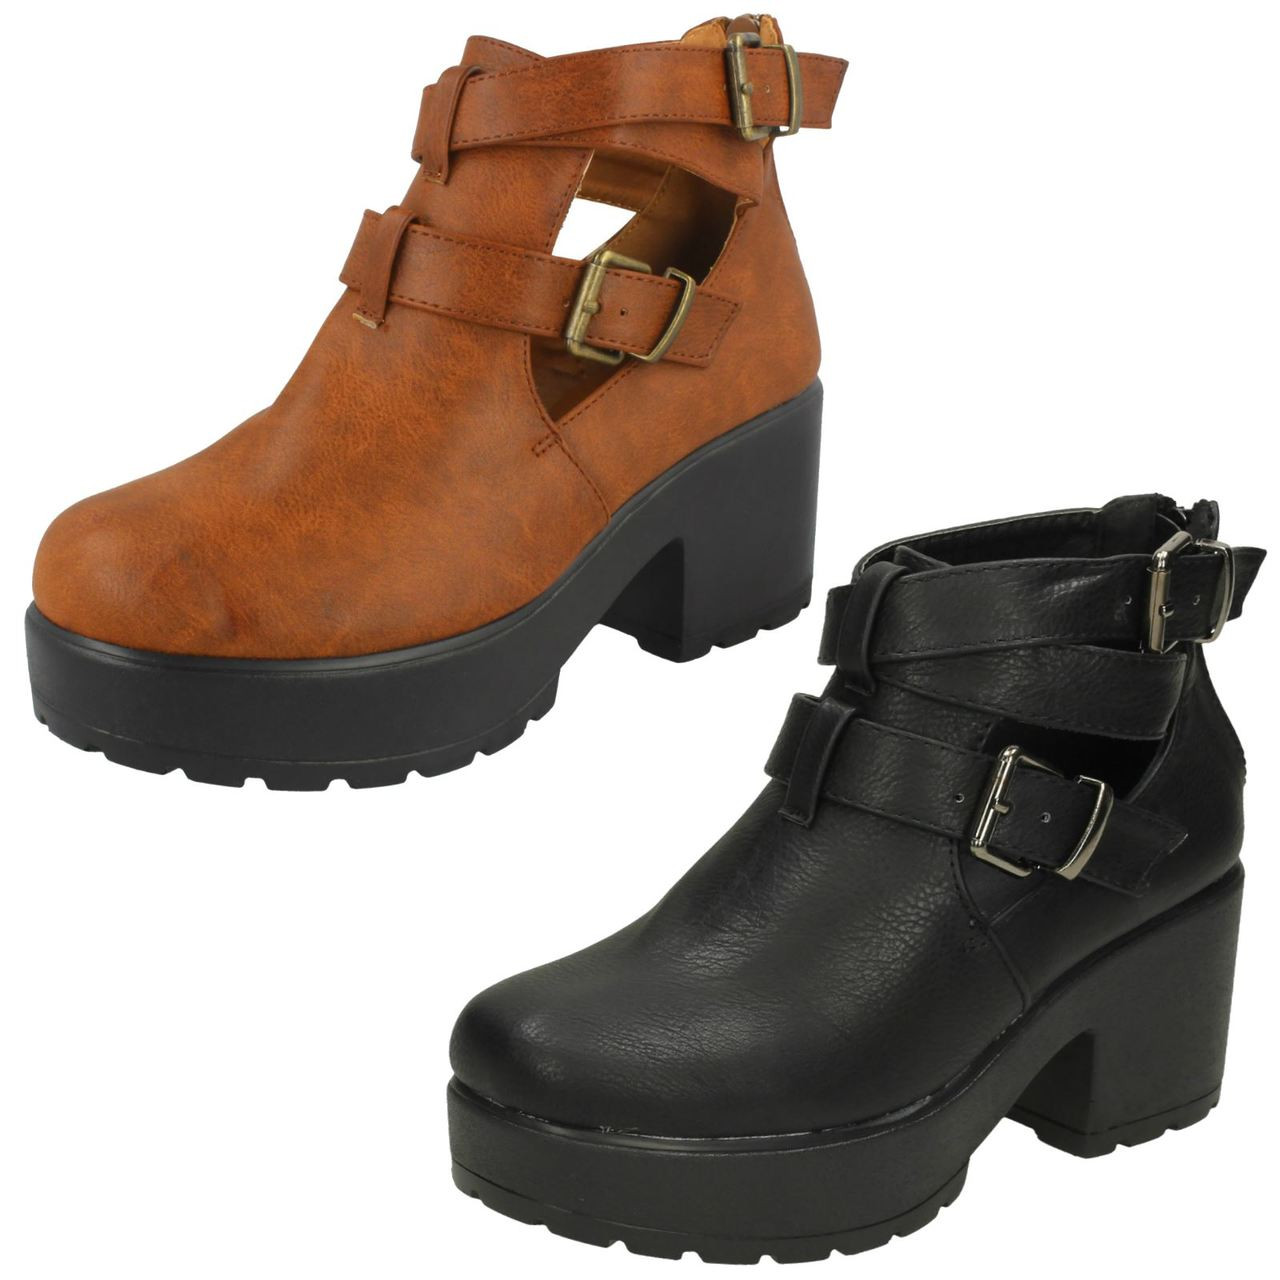 Girls Spot On Chunky Sole Heeled Shoes *H3038*